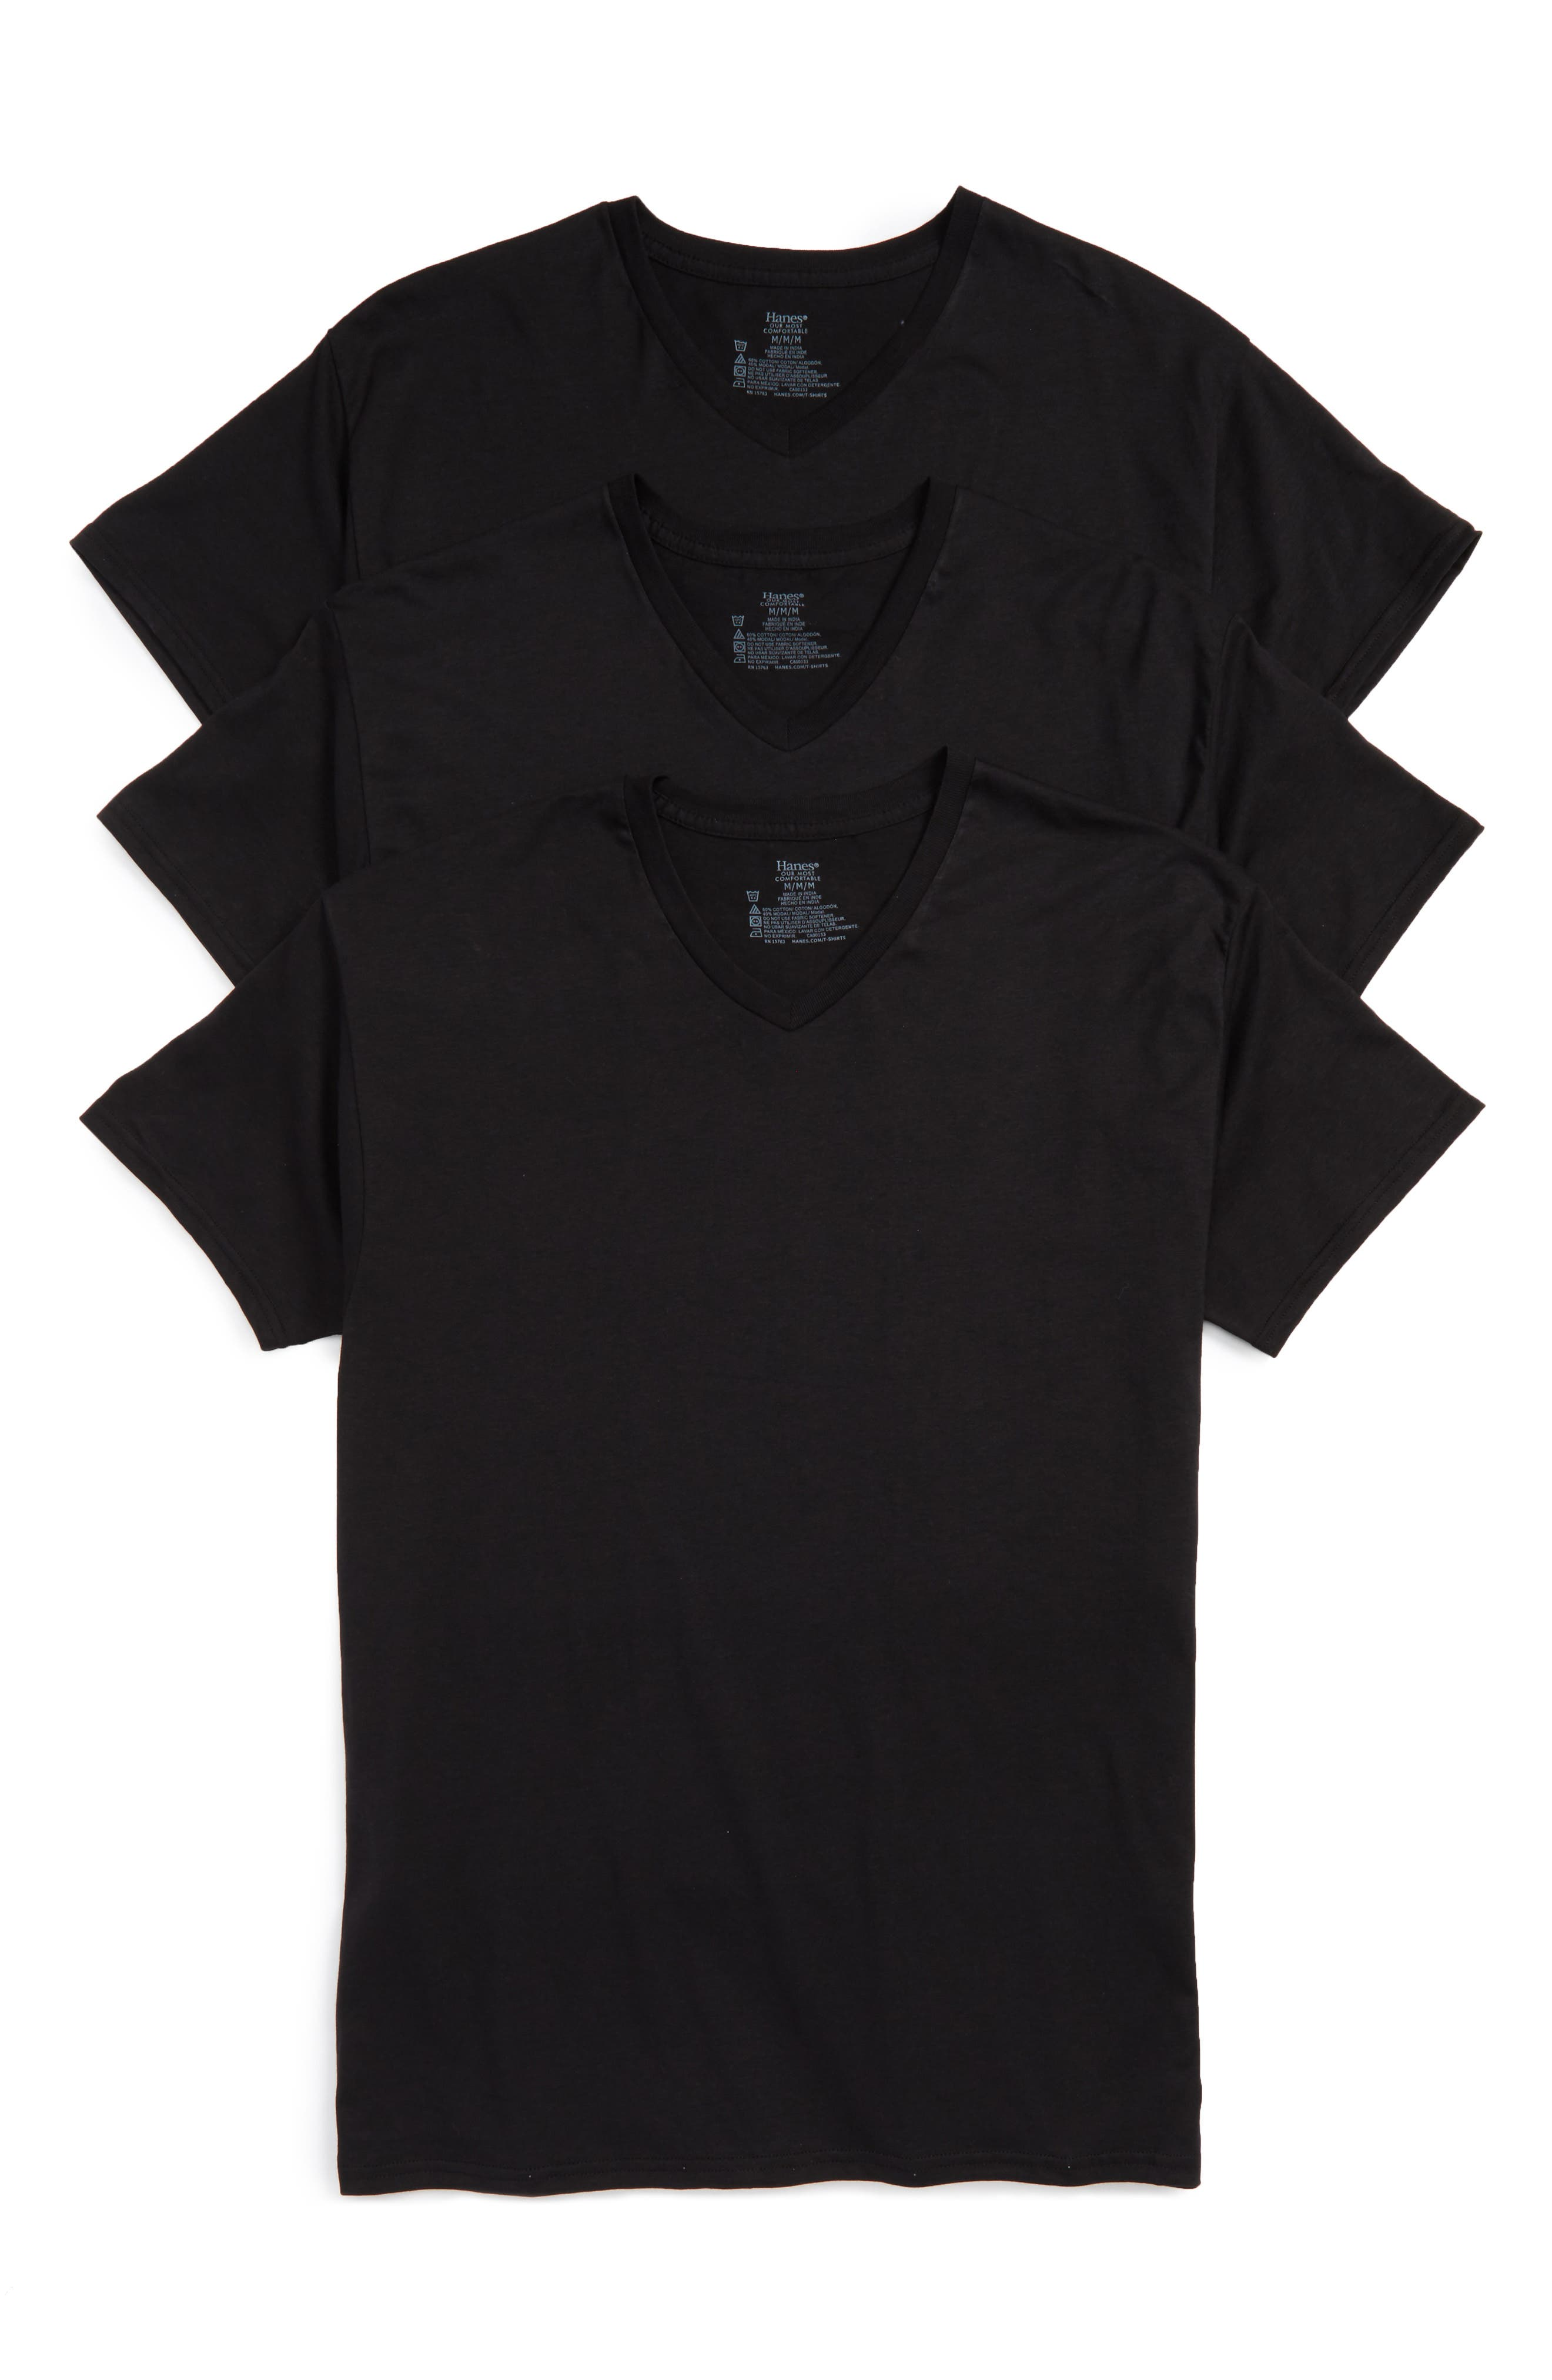 Main Image - Hanes Luxury Essentials 3-Pack V-Neck T-Shirt